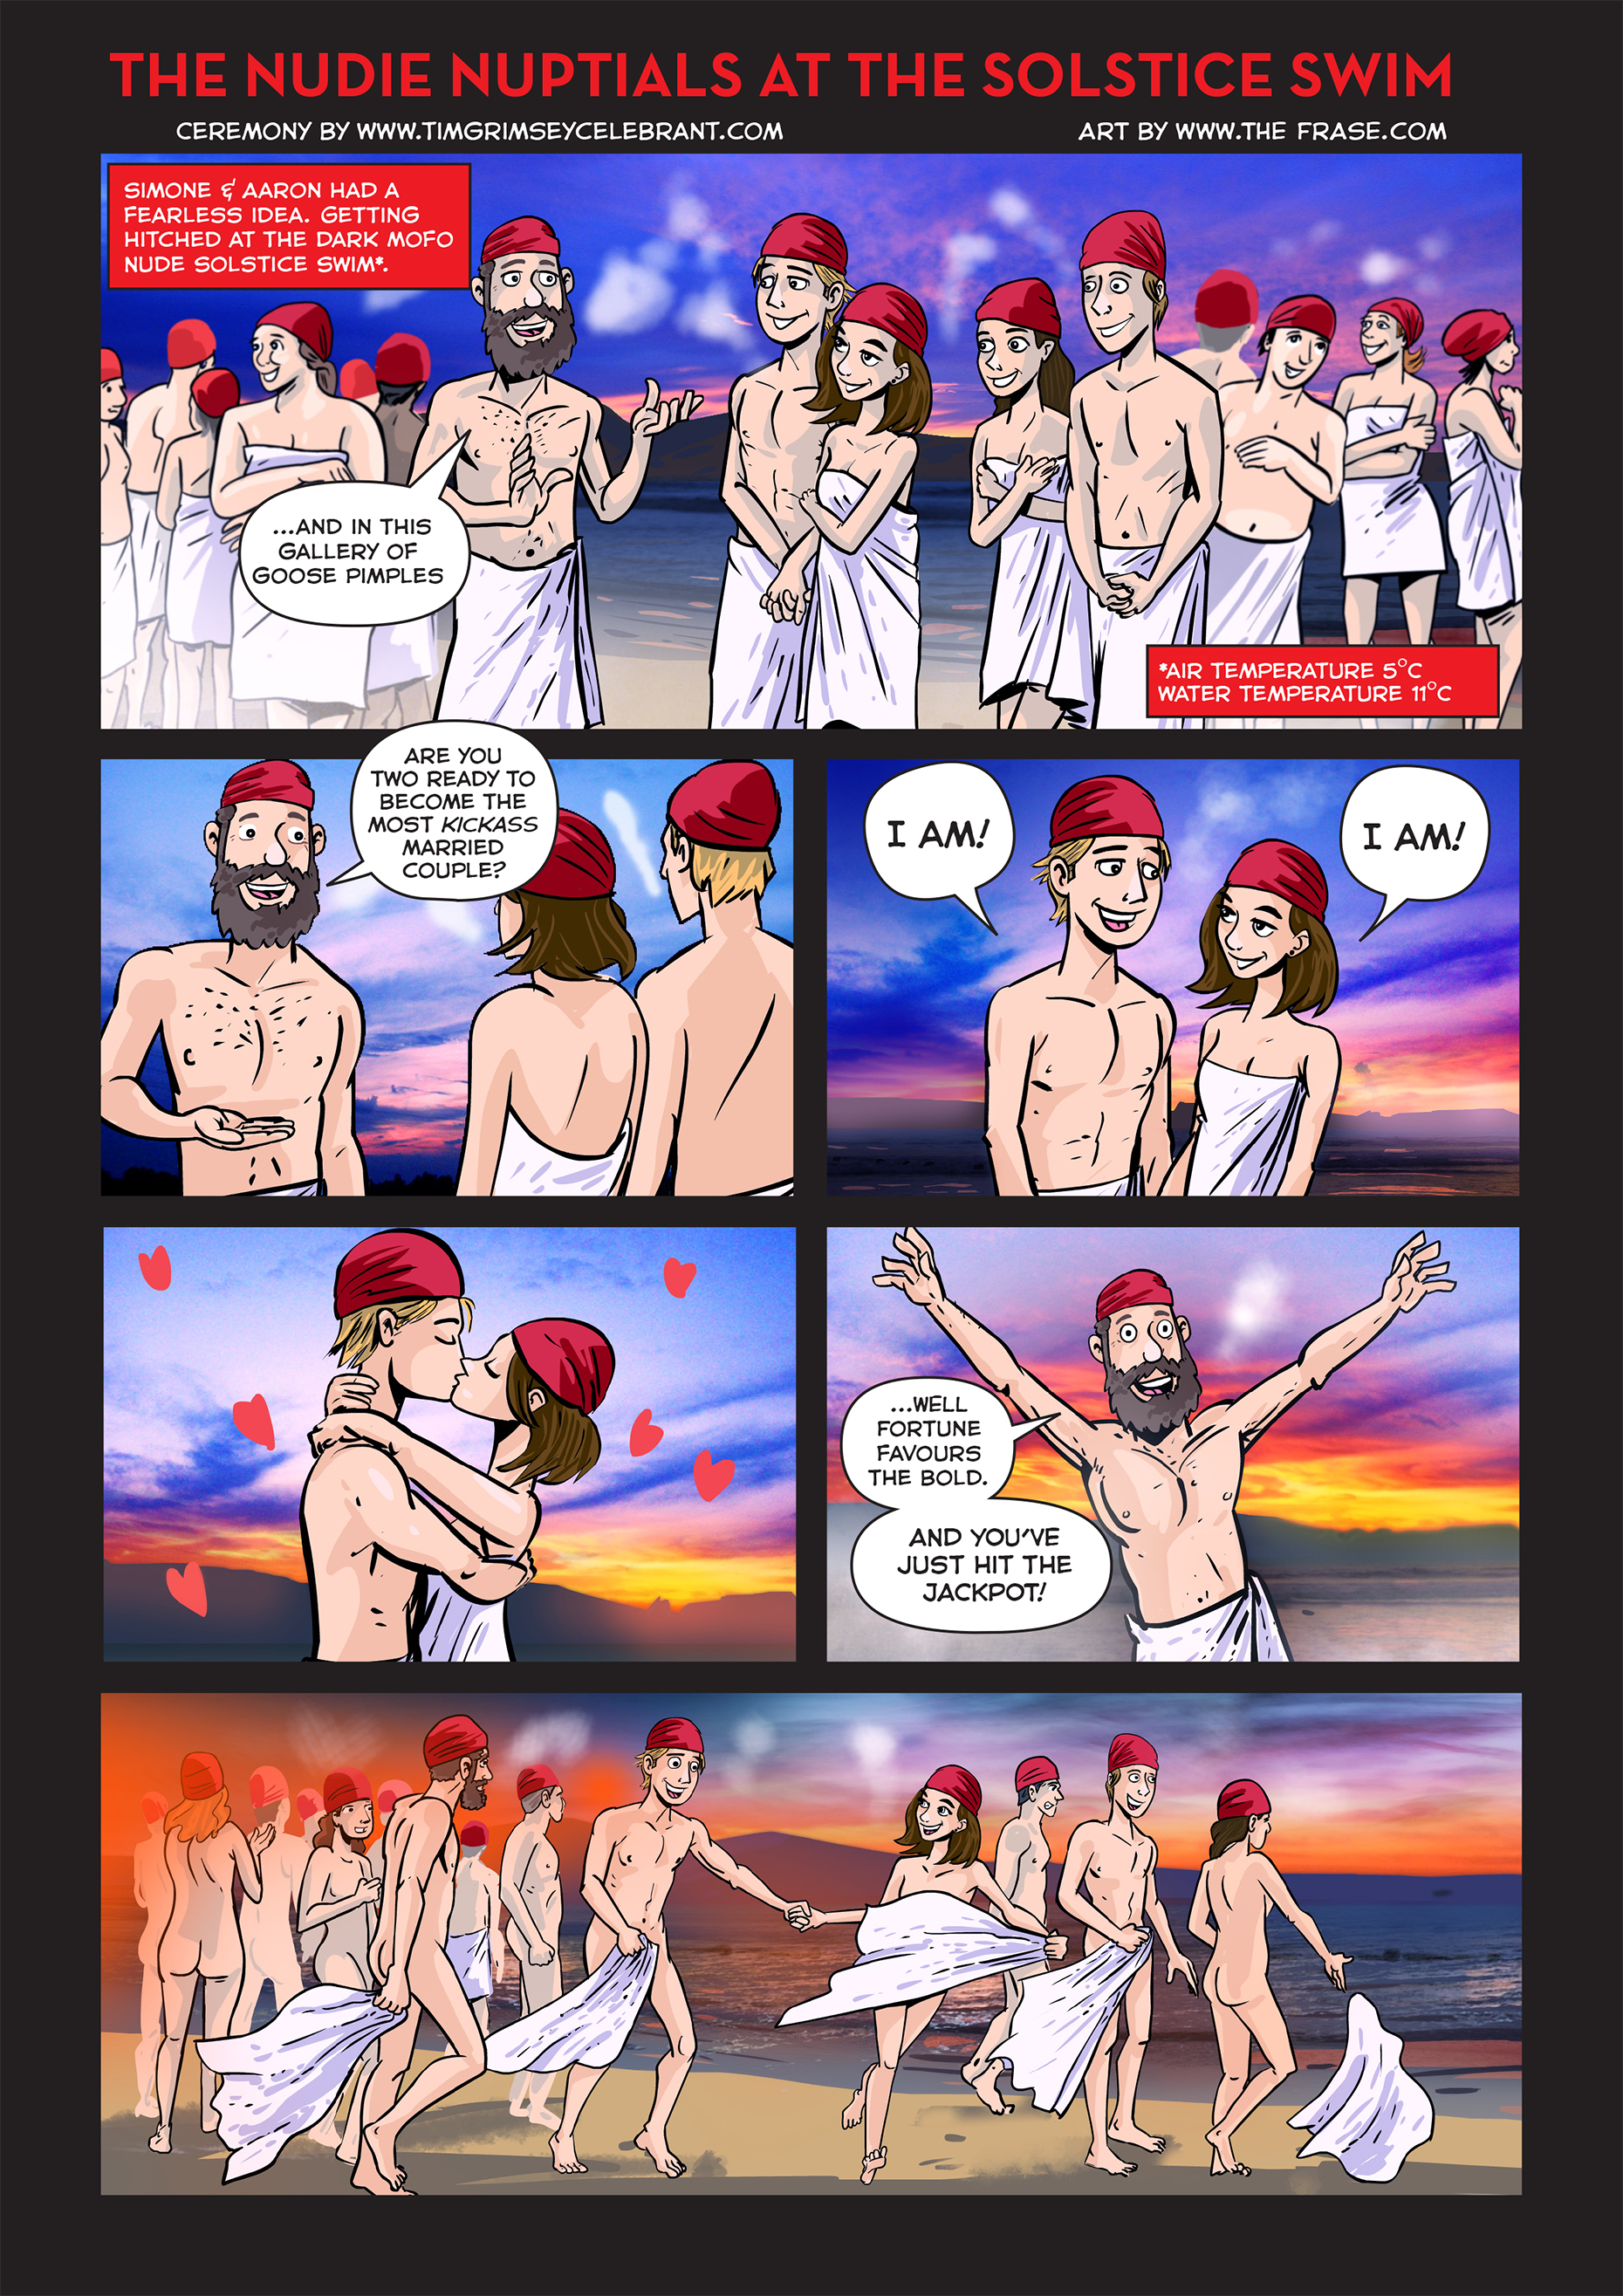 nude wedding dark mofo solstice swim.jpg